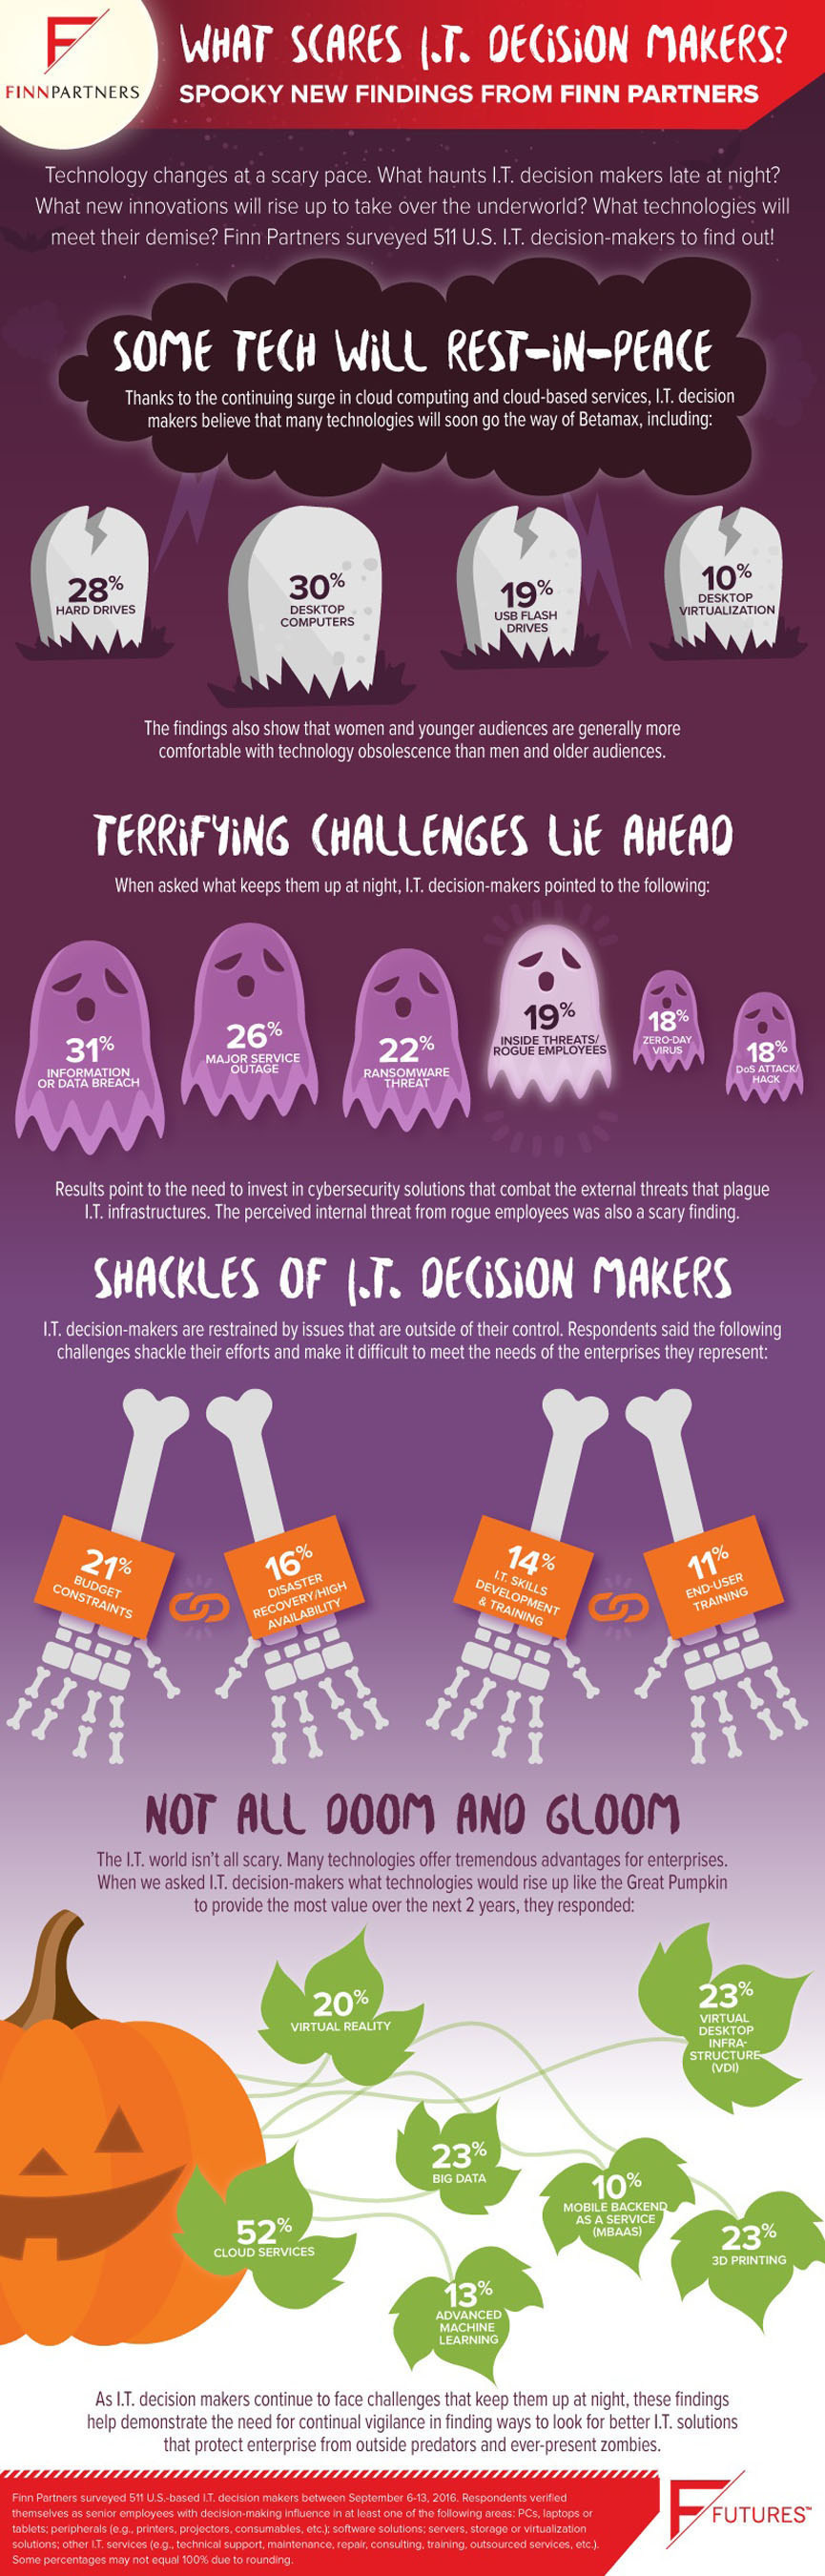 New Findings From Finn Partners Identify What Scares I.T. Decision Makers